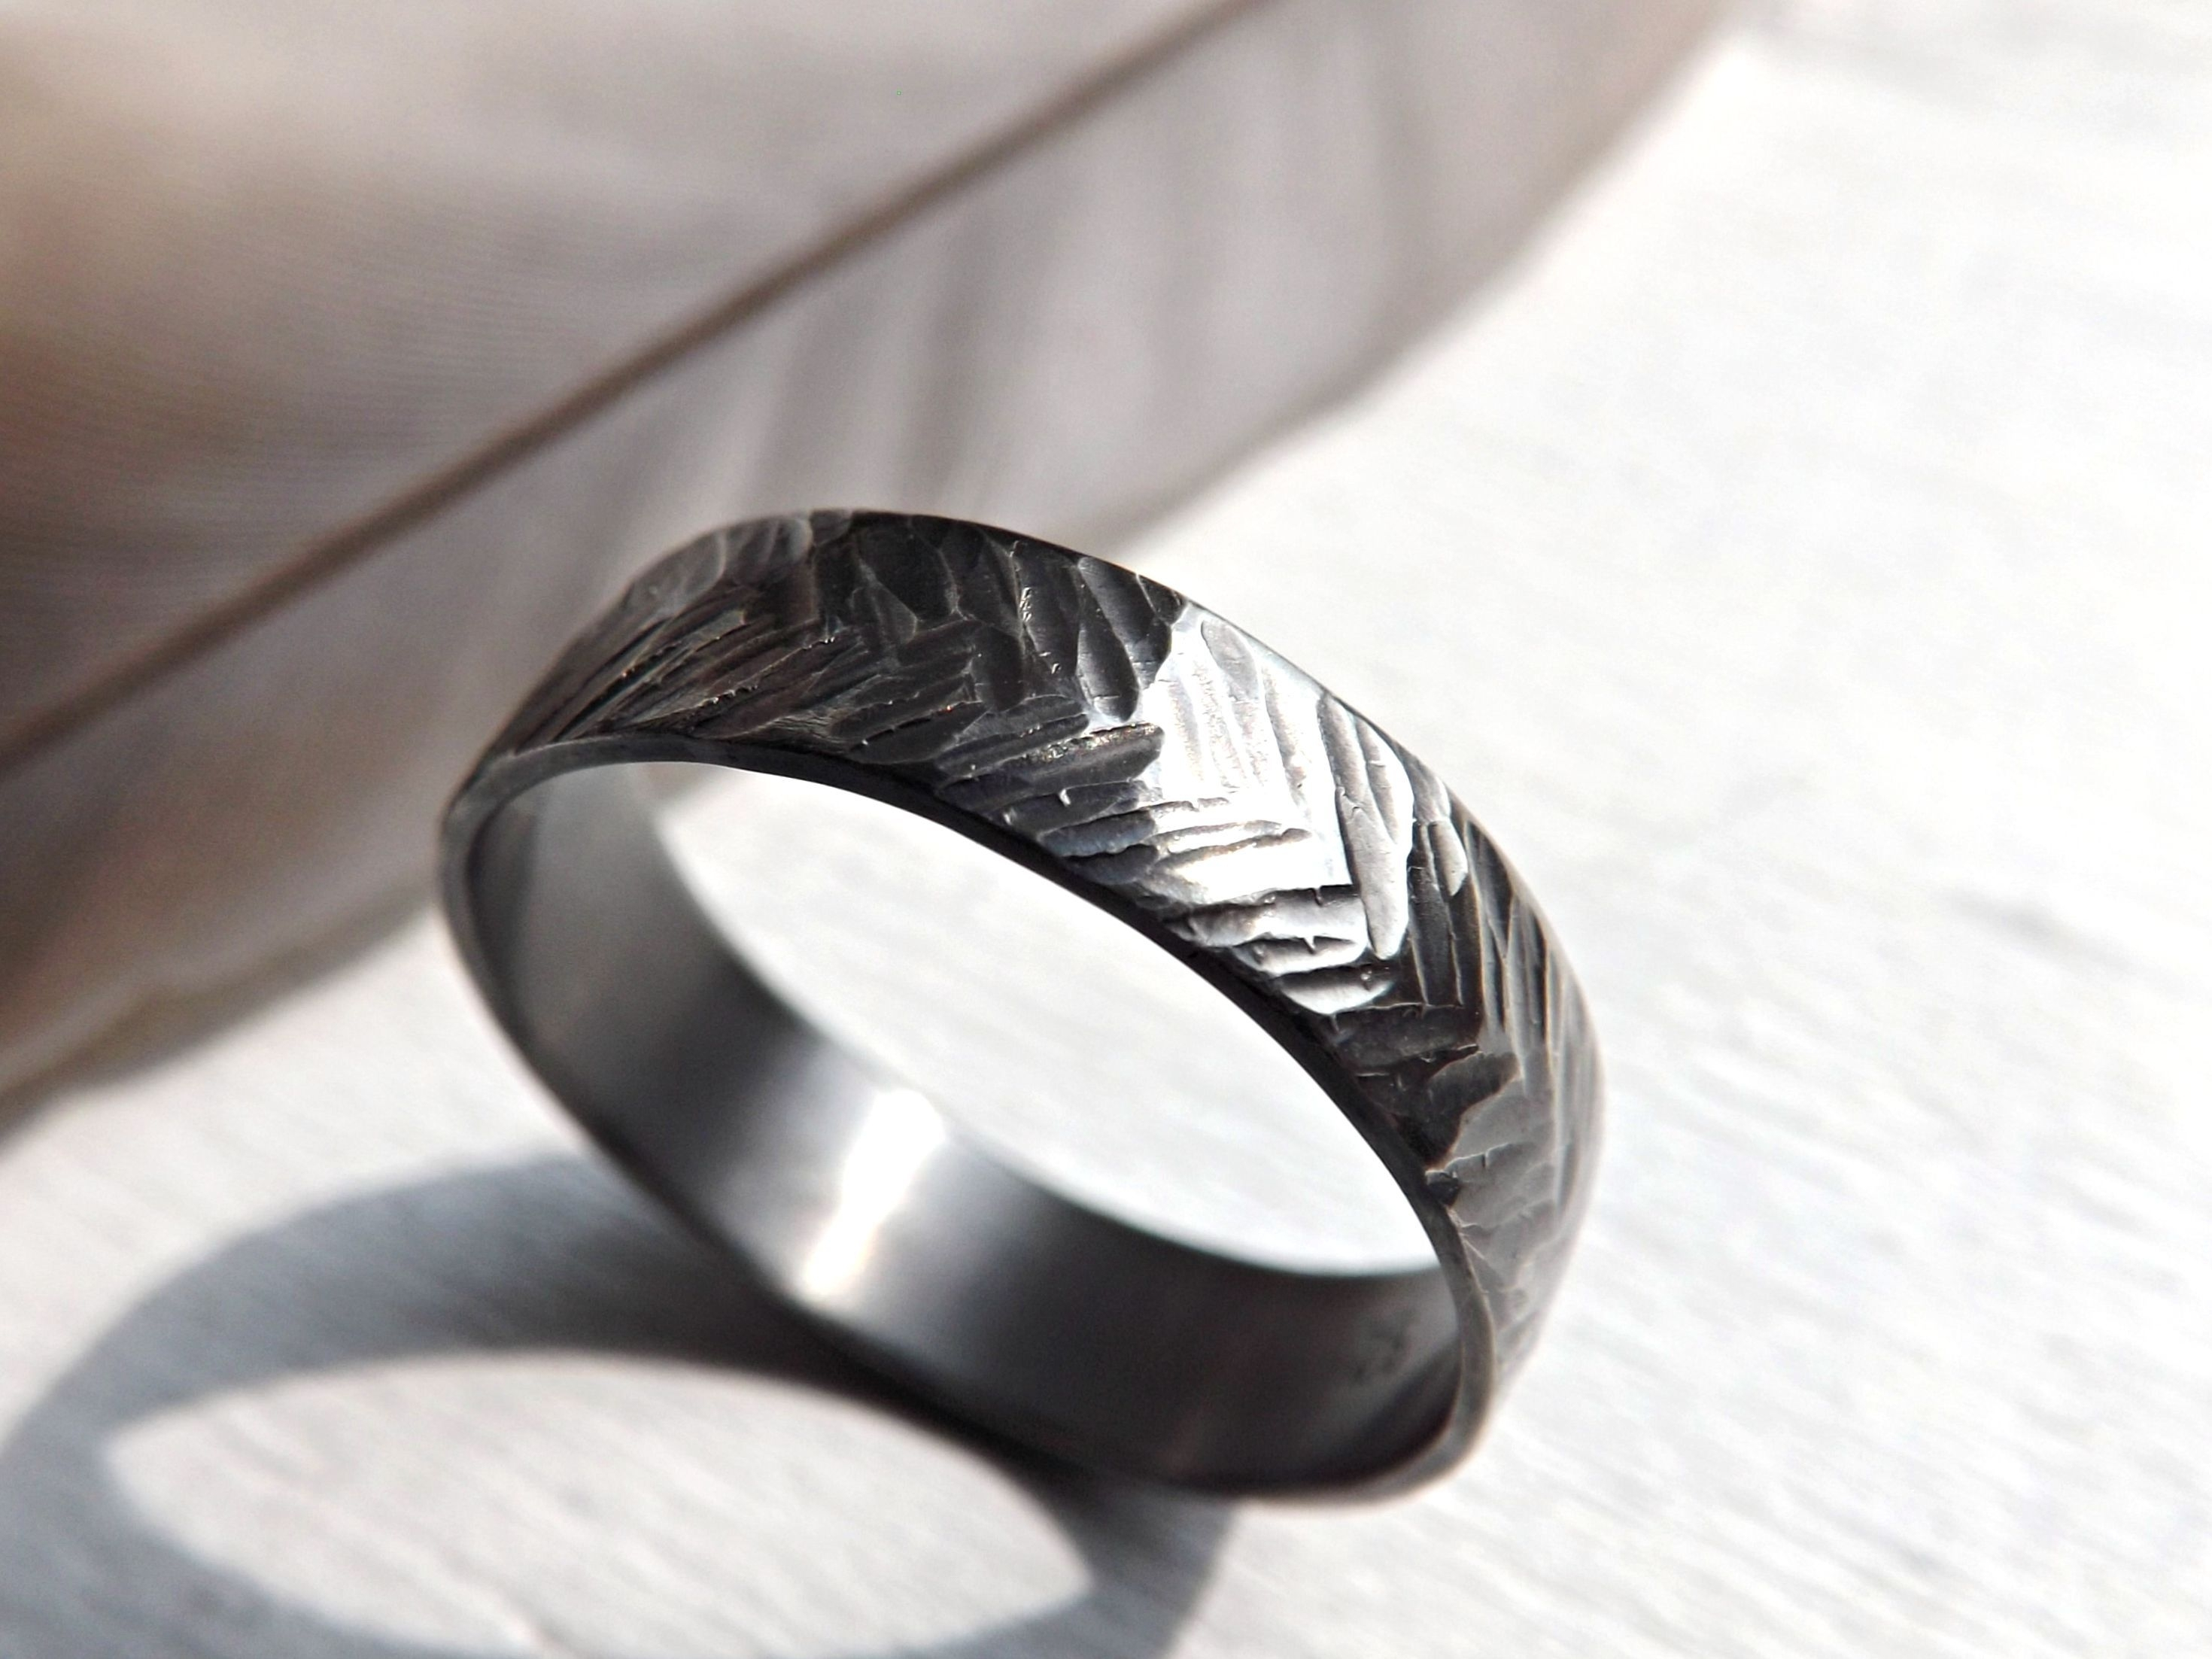 Buy A Handmade Chevron Wedding Ring Silver, Sterling Silver Ring Within Most Current Chevron Signet Rings (View 2 of 15)